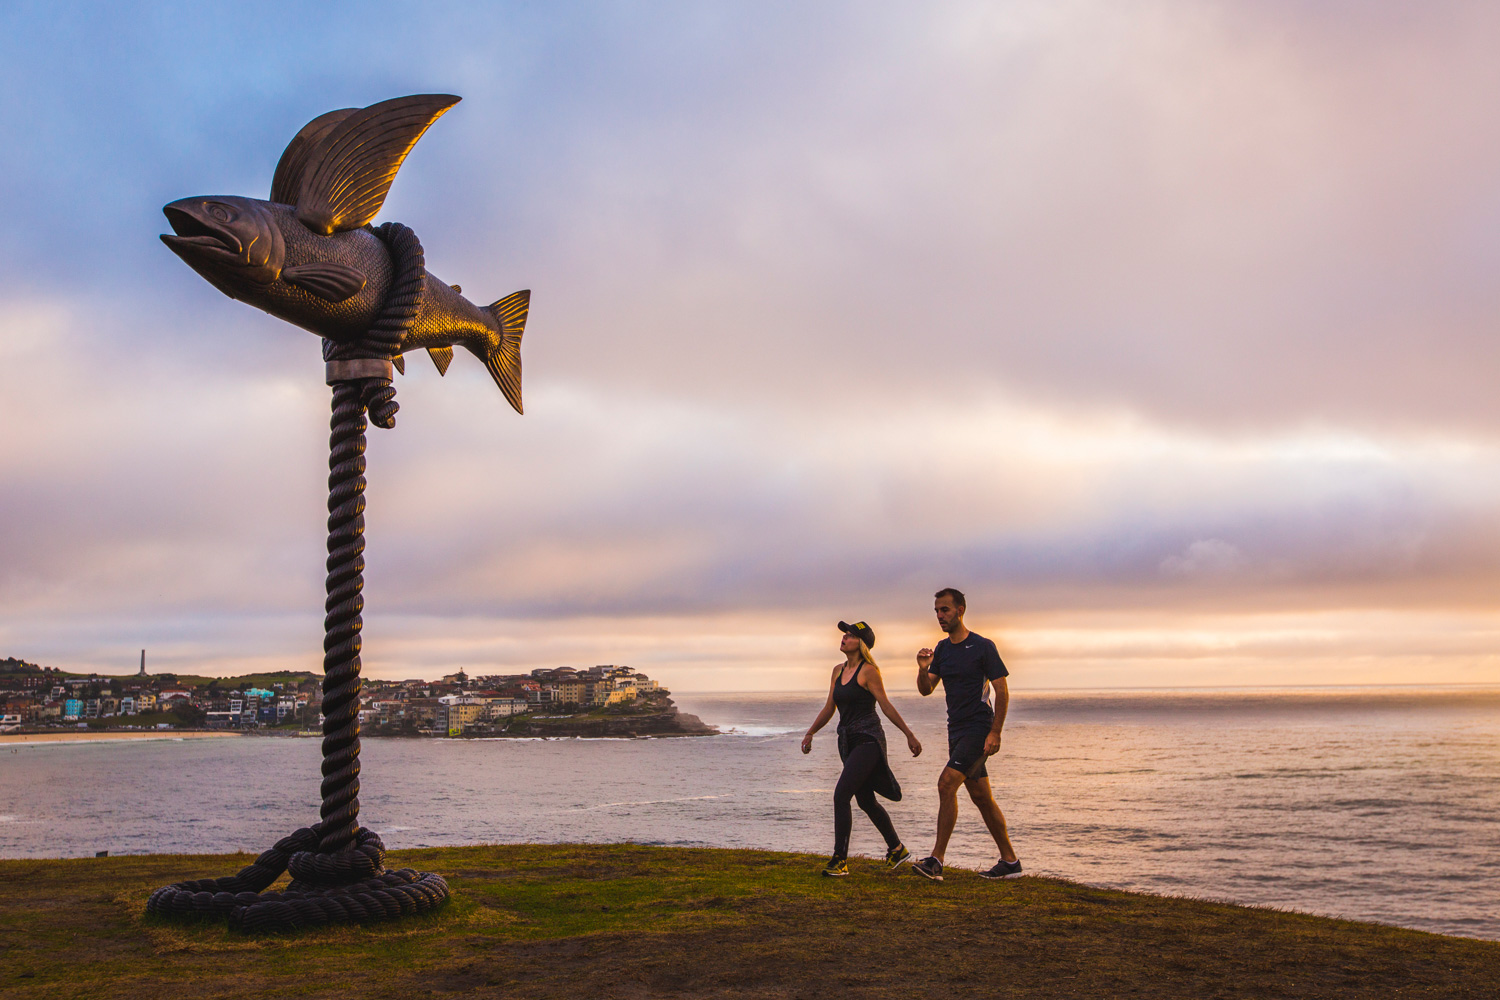 Gillie & Marc Schattner, flying fish, Sculpture by the Sea, Bondi 2015. Photo Jessica Wyld.